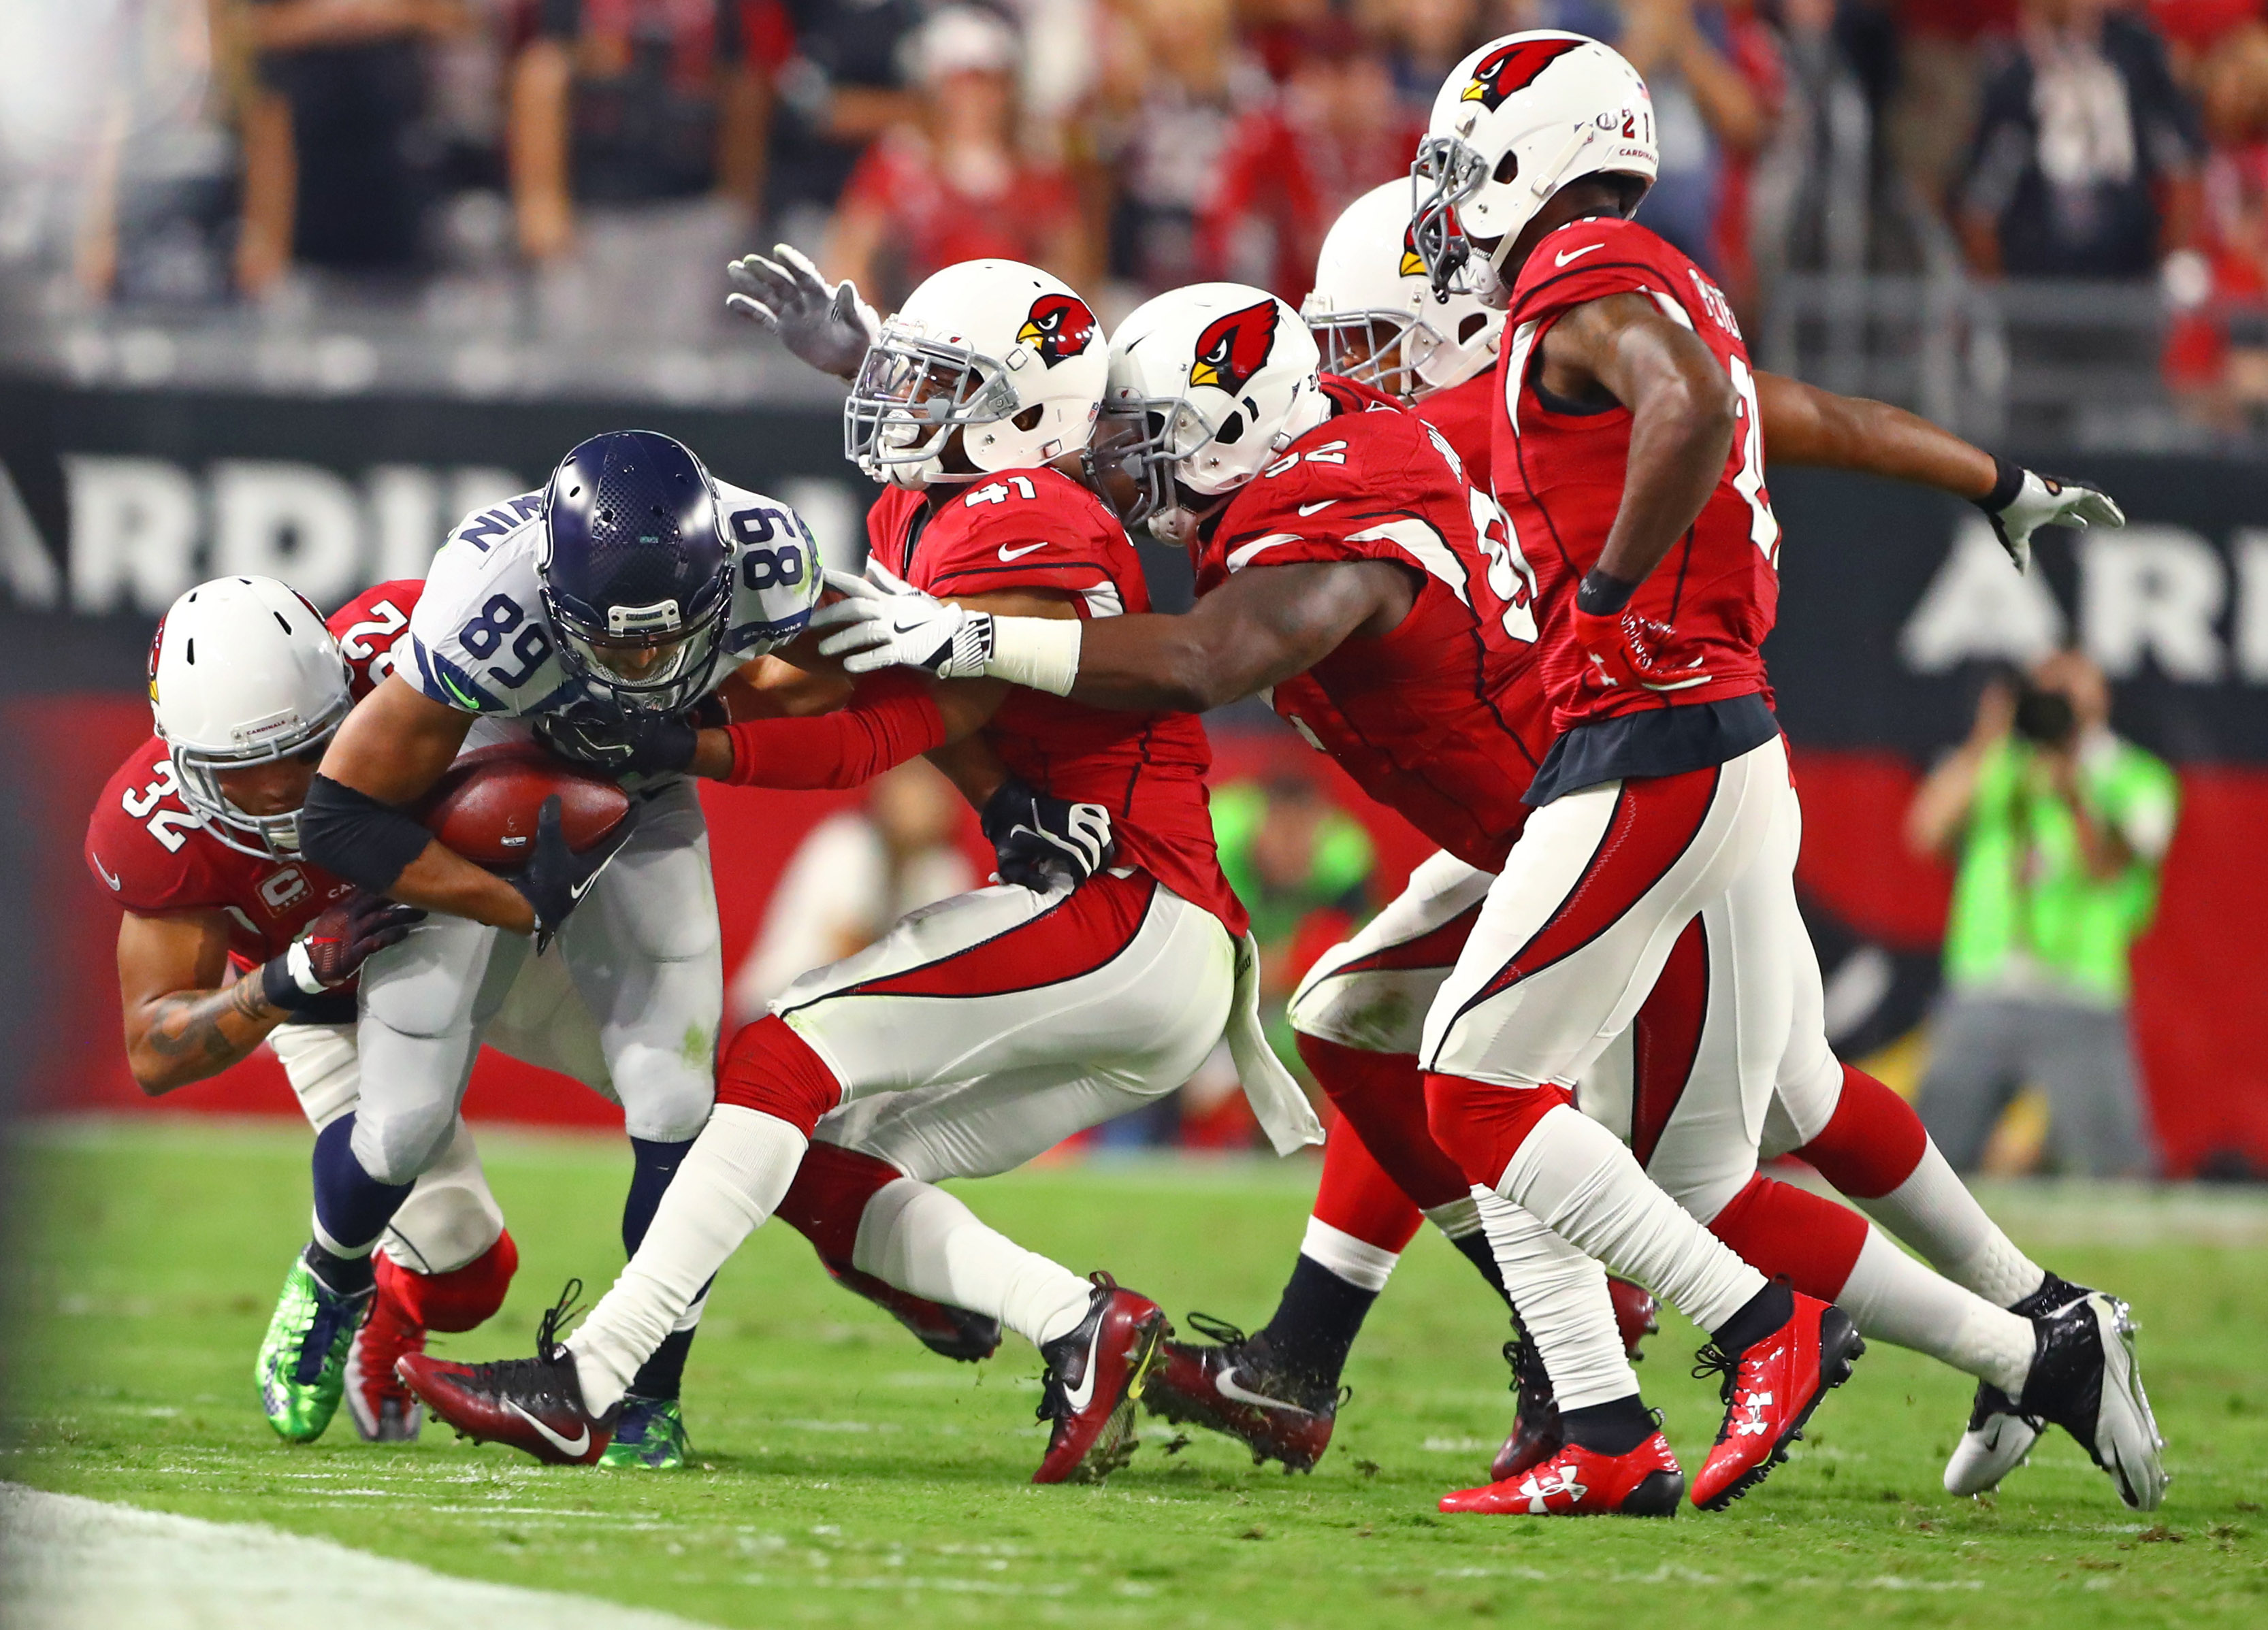 9629679-nfl-seattle-seahawks-at-arizona-cardinals